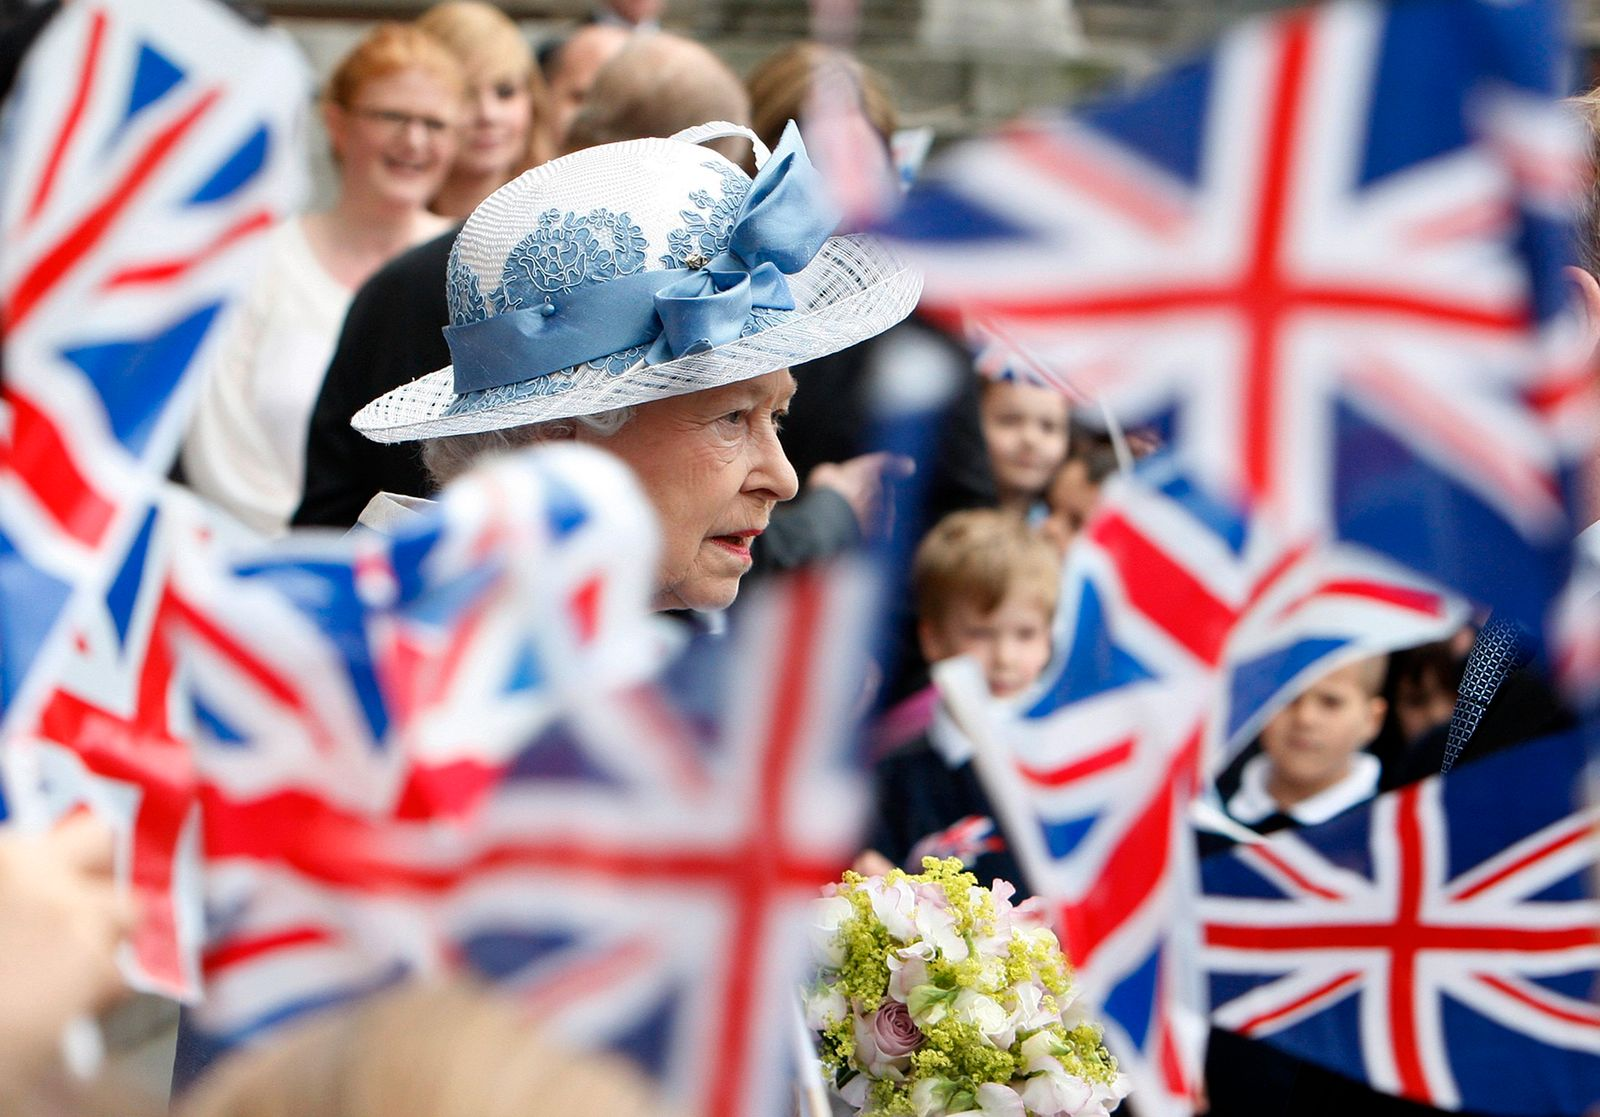 Britain's Queen Elizabeth is surrounded by flags waved by children while leaving after a service marking the tercentenary of St Paul's Cathedral in London